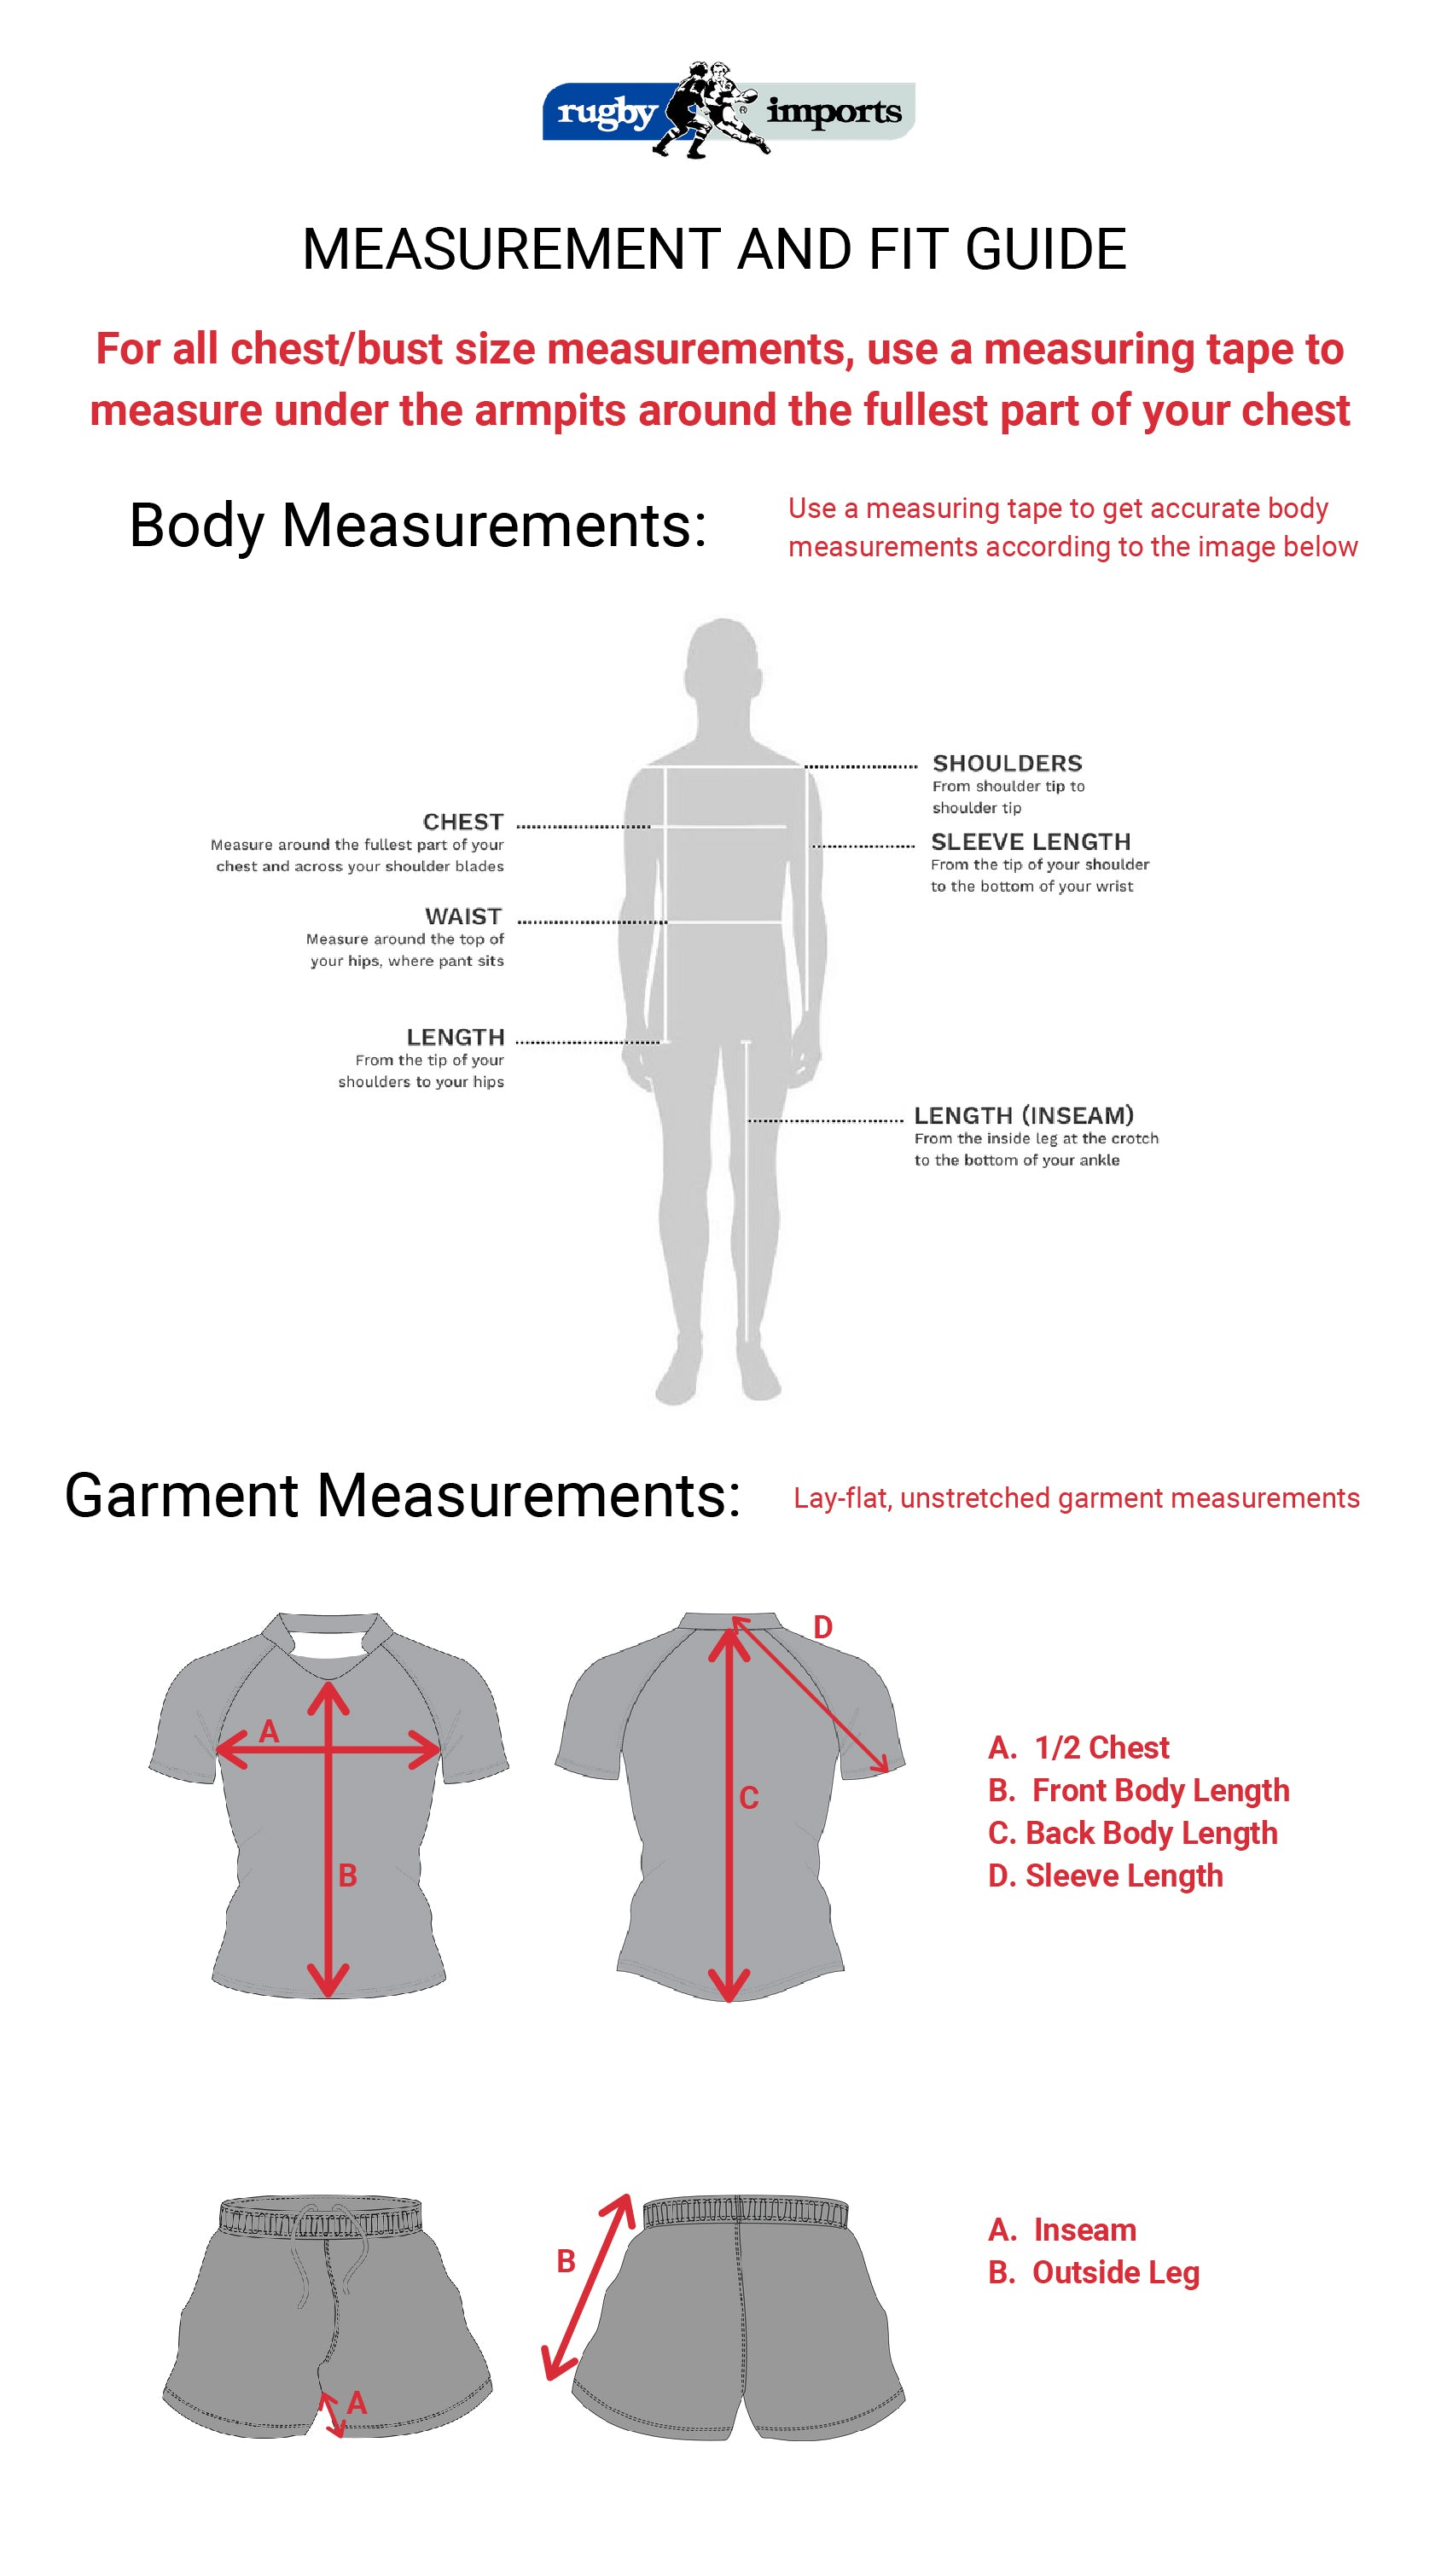 Measurement and fit guide